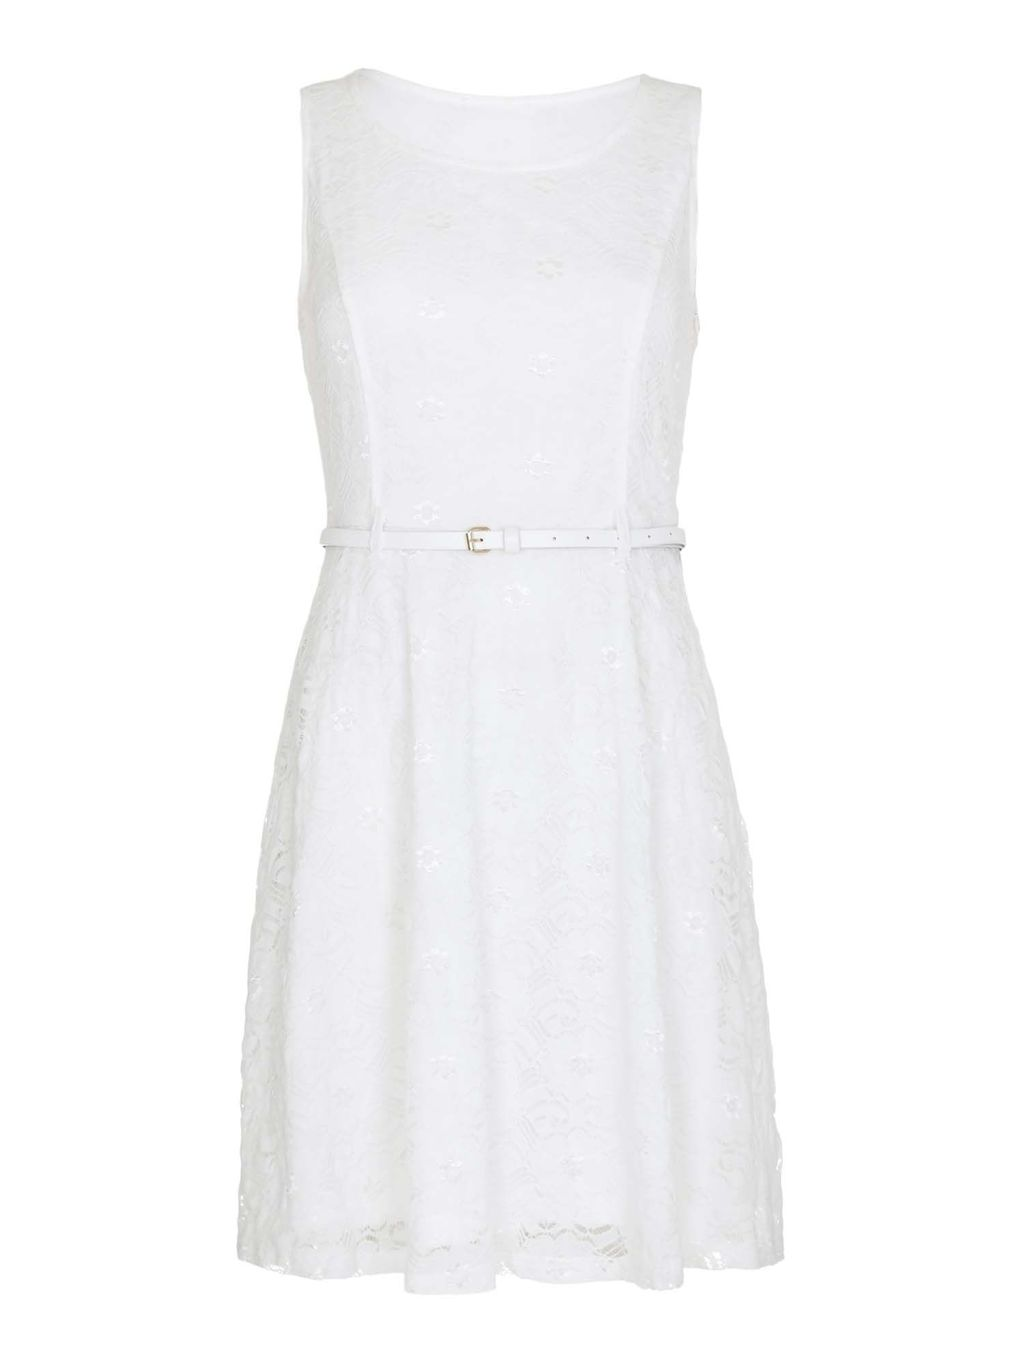 Lace Skater Dress, White - sleeve style: sleeveless; predominant colour: white; length: on the knee; fit: fitted at waist & bust; style: fit & flare; fibres: polyester/polyamide - stretch; occasions: occasion; neckline: crew; sleeve length: sleeveless; texture group: lace; pattern type: fabric; pattern size: light/subtle; pattern: patterned/print; season: s/s 2016; wardrobe: event